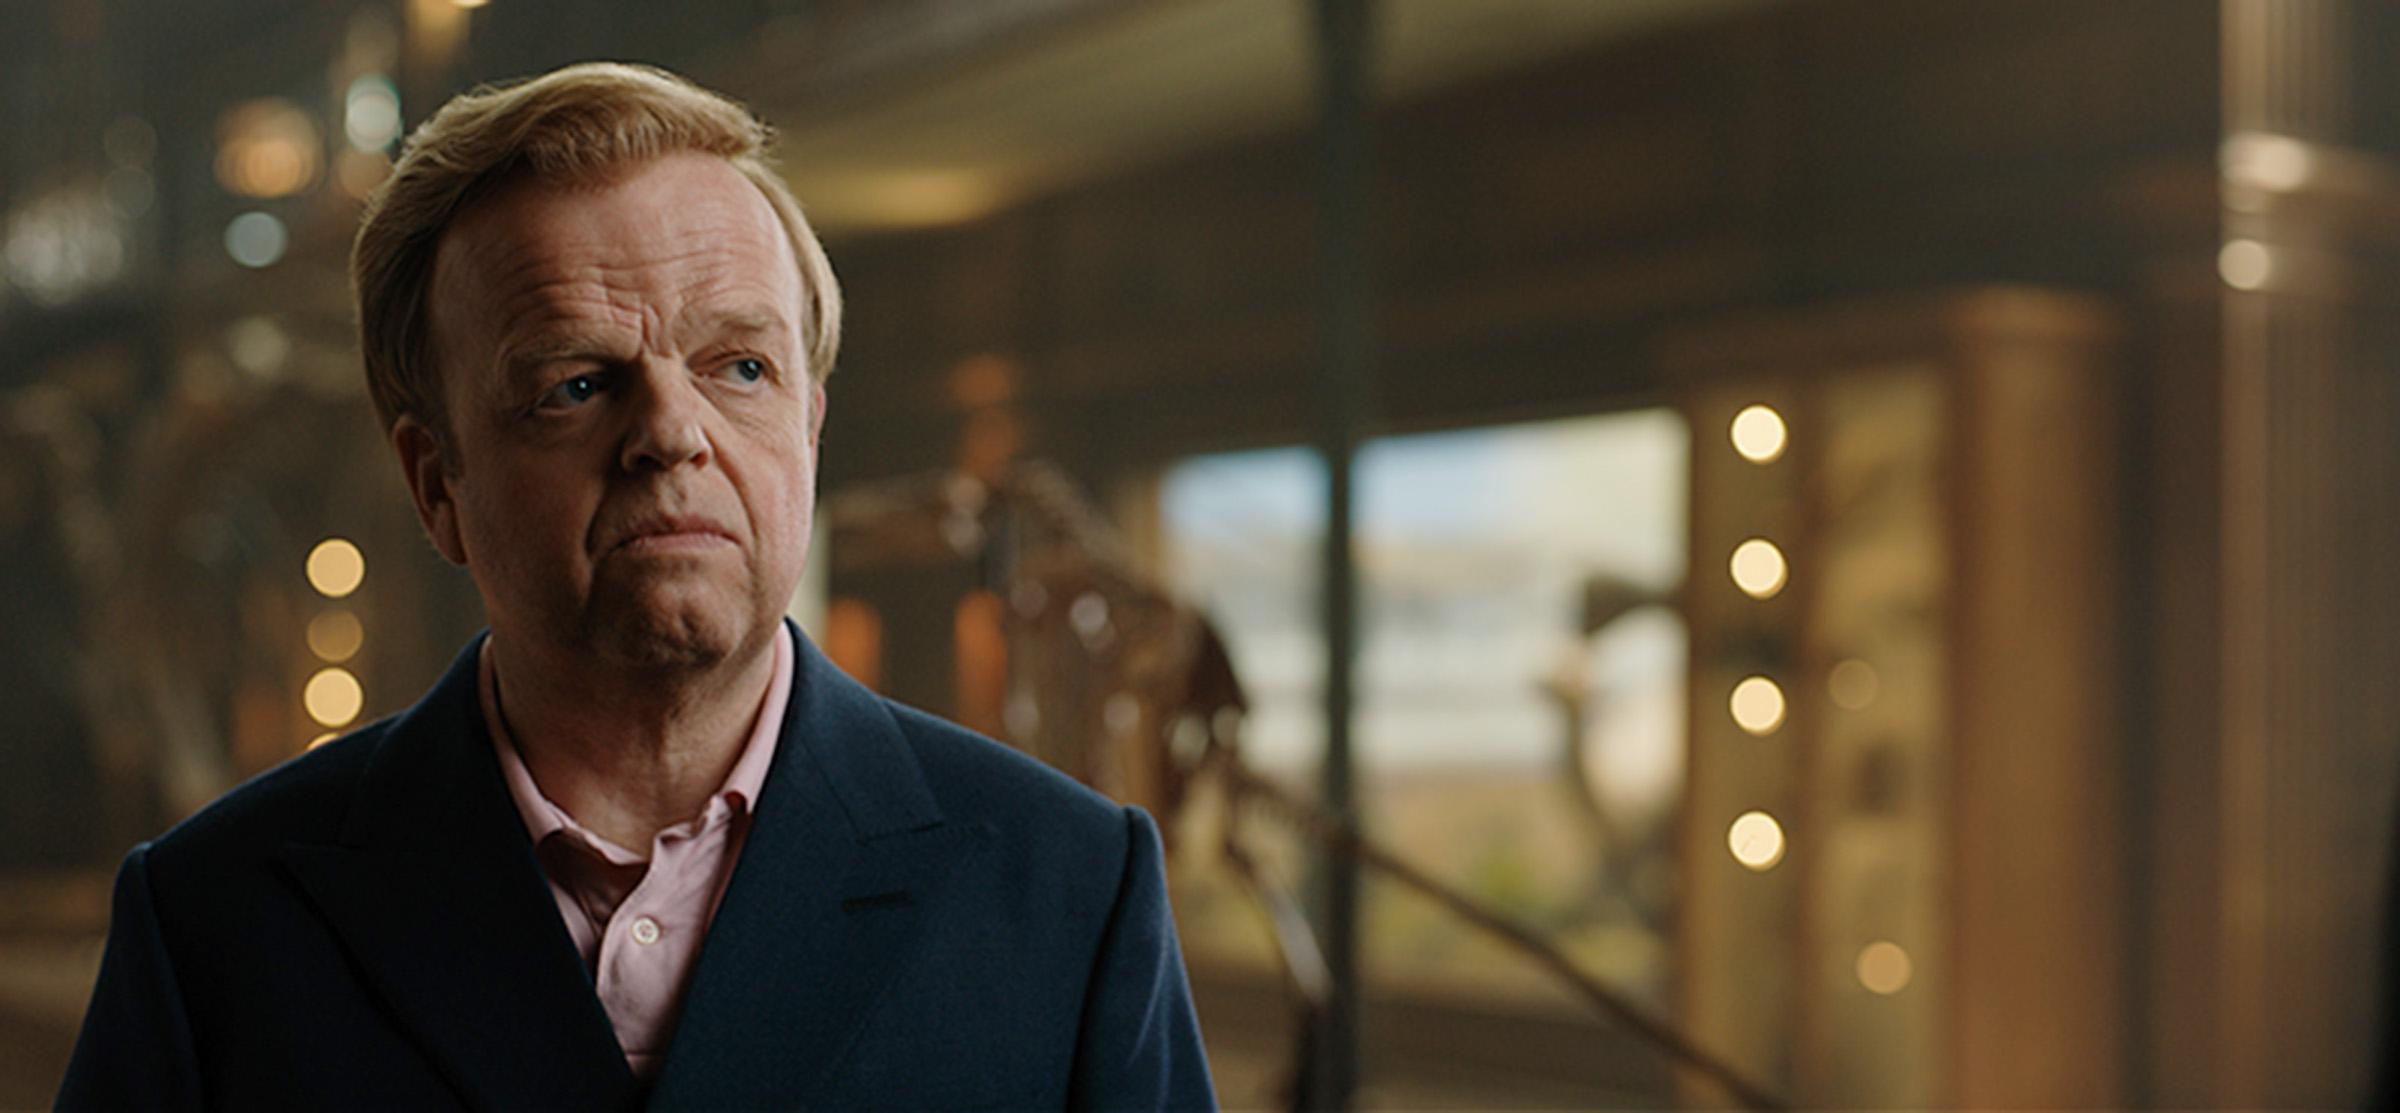 Toby Jones in Jurassic World: Fallen Kingdom